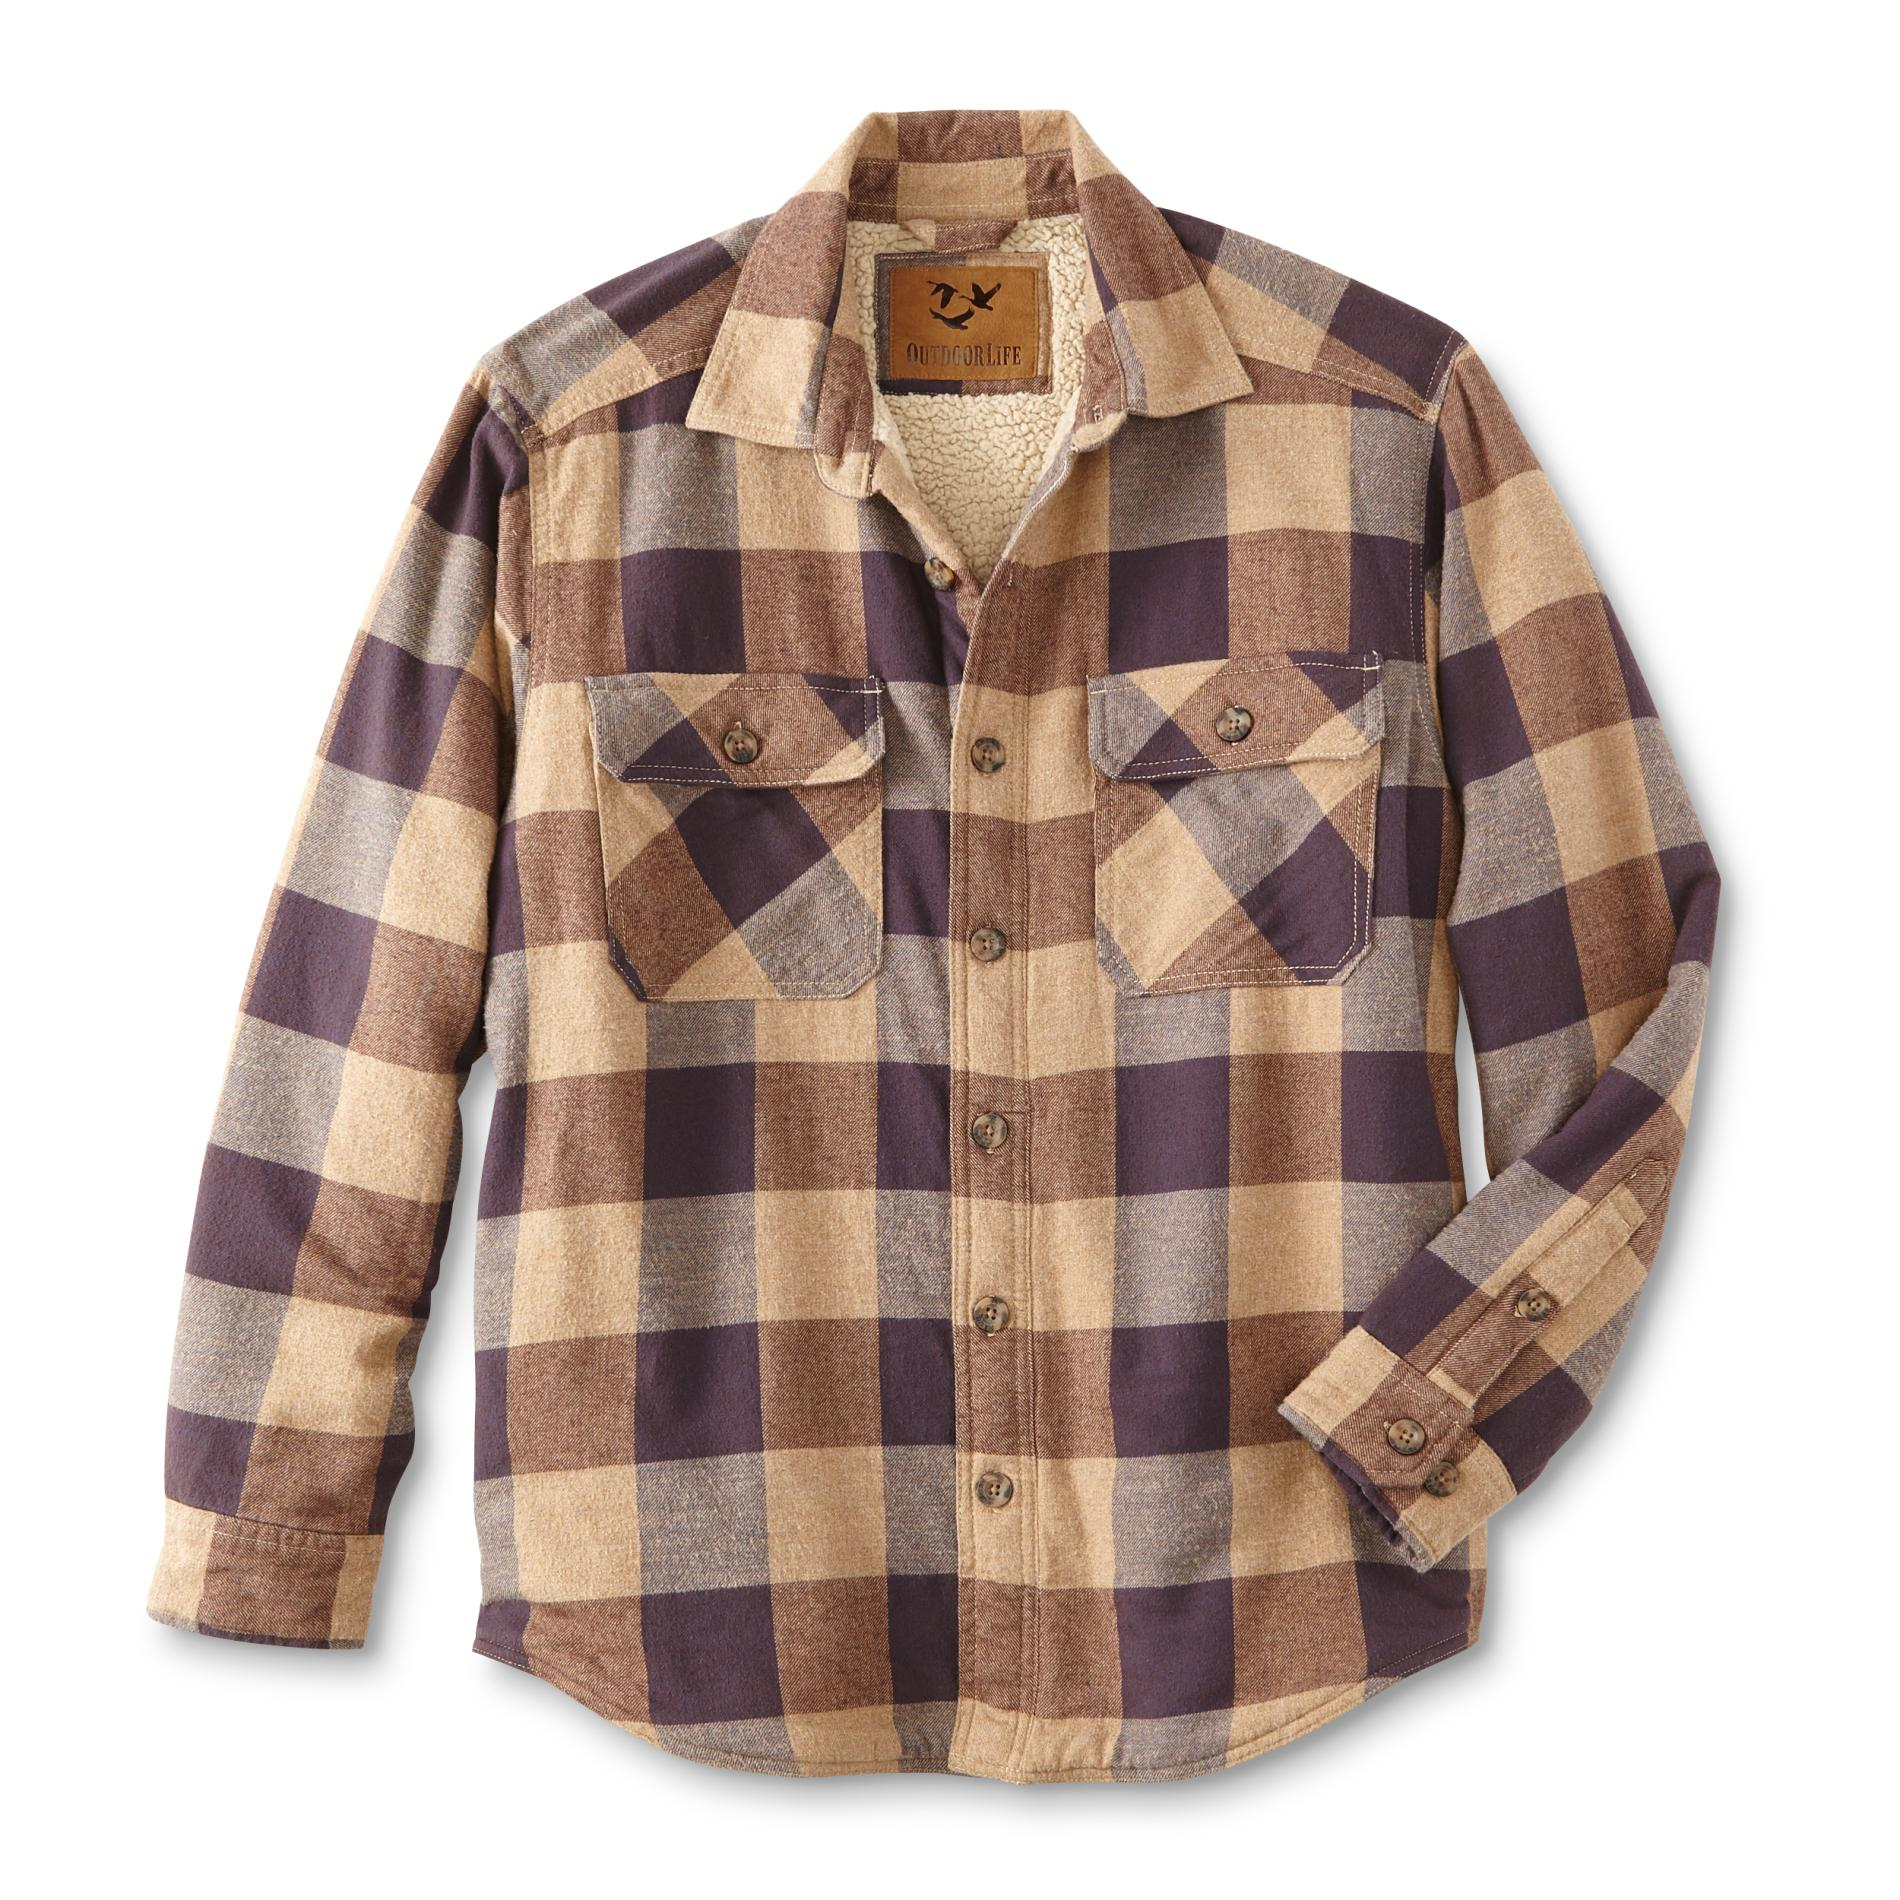 Outdoor Life Mens Flannel Shirt Jacket Plaid Size Xl Mood